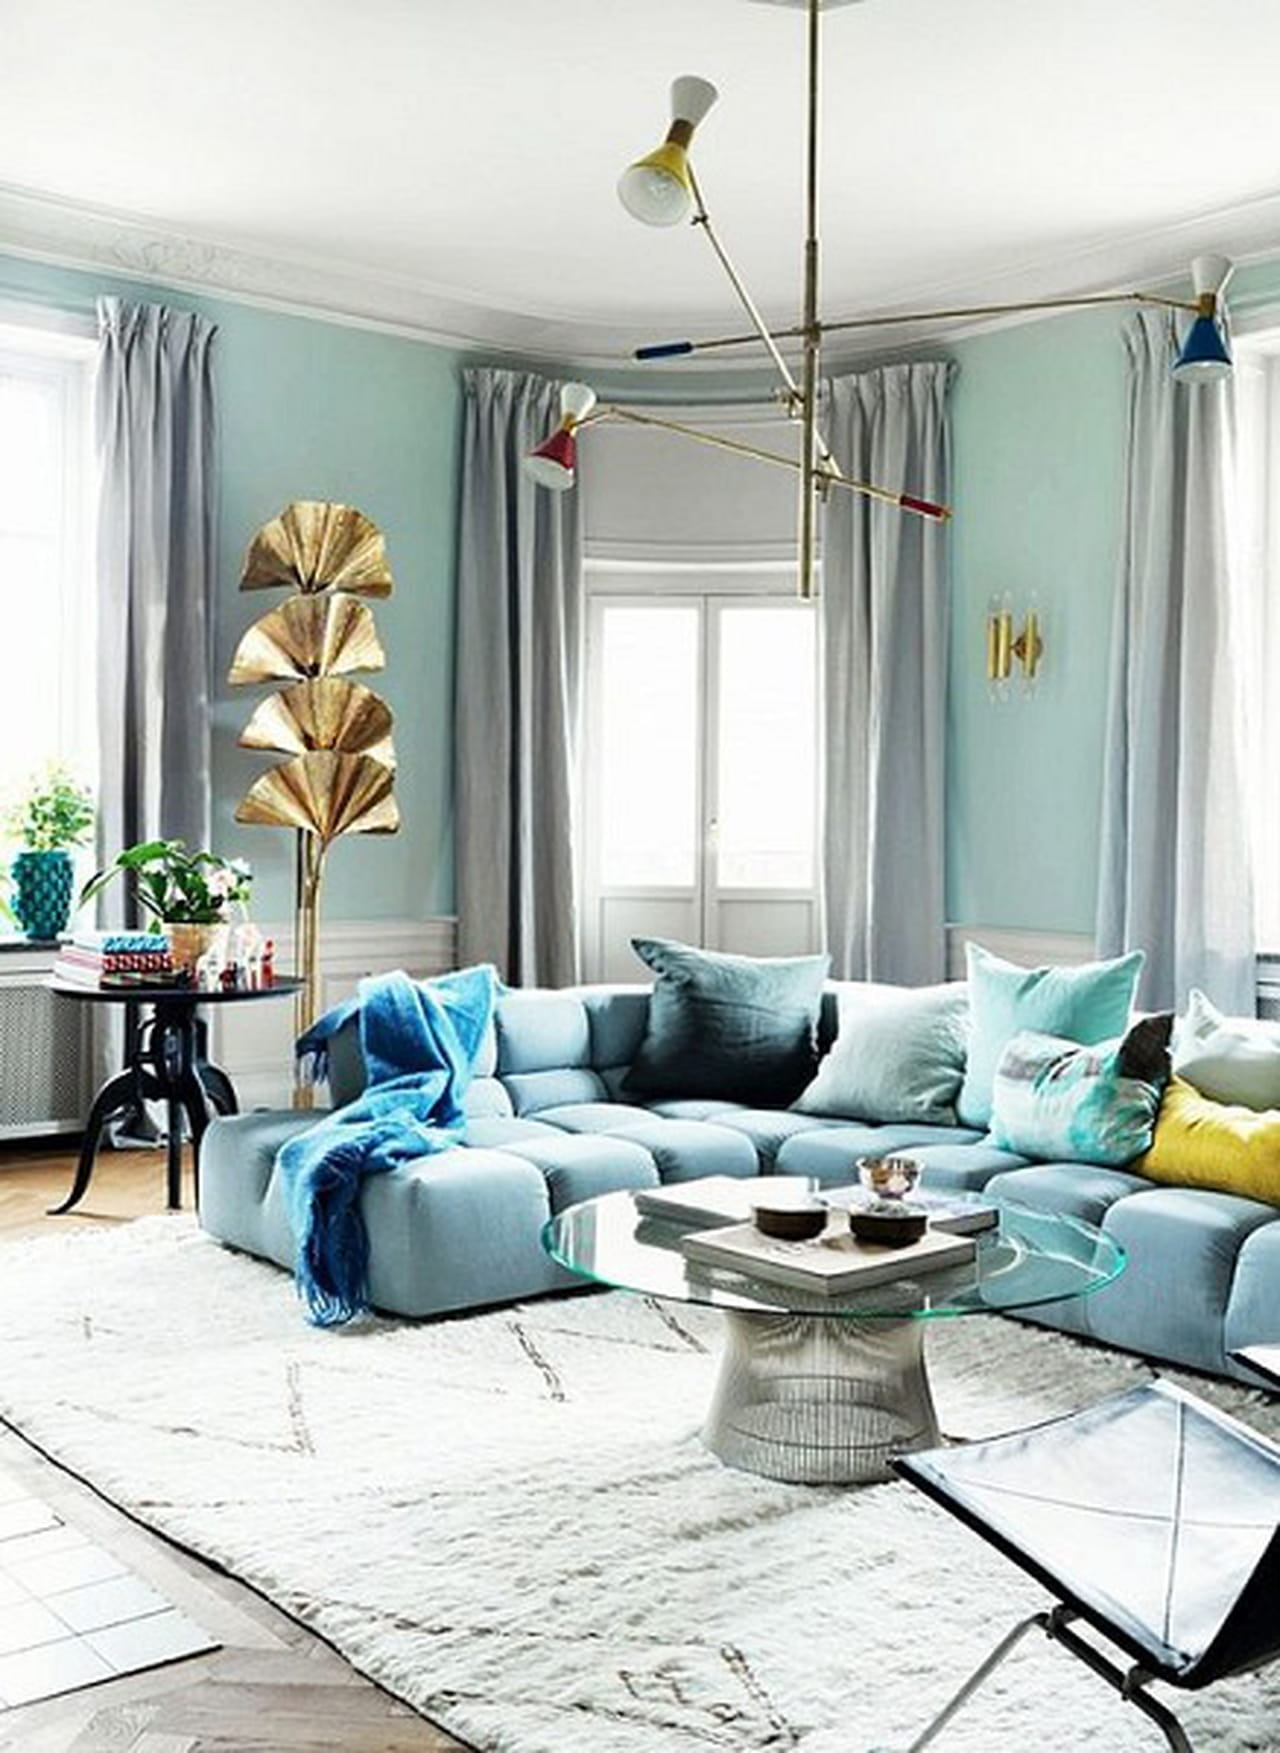 Teal And Yellow Baby Room